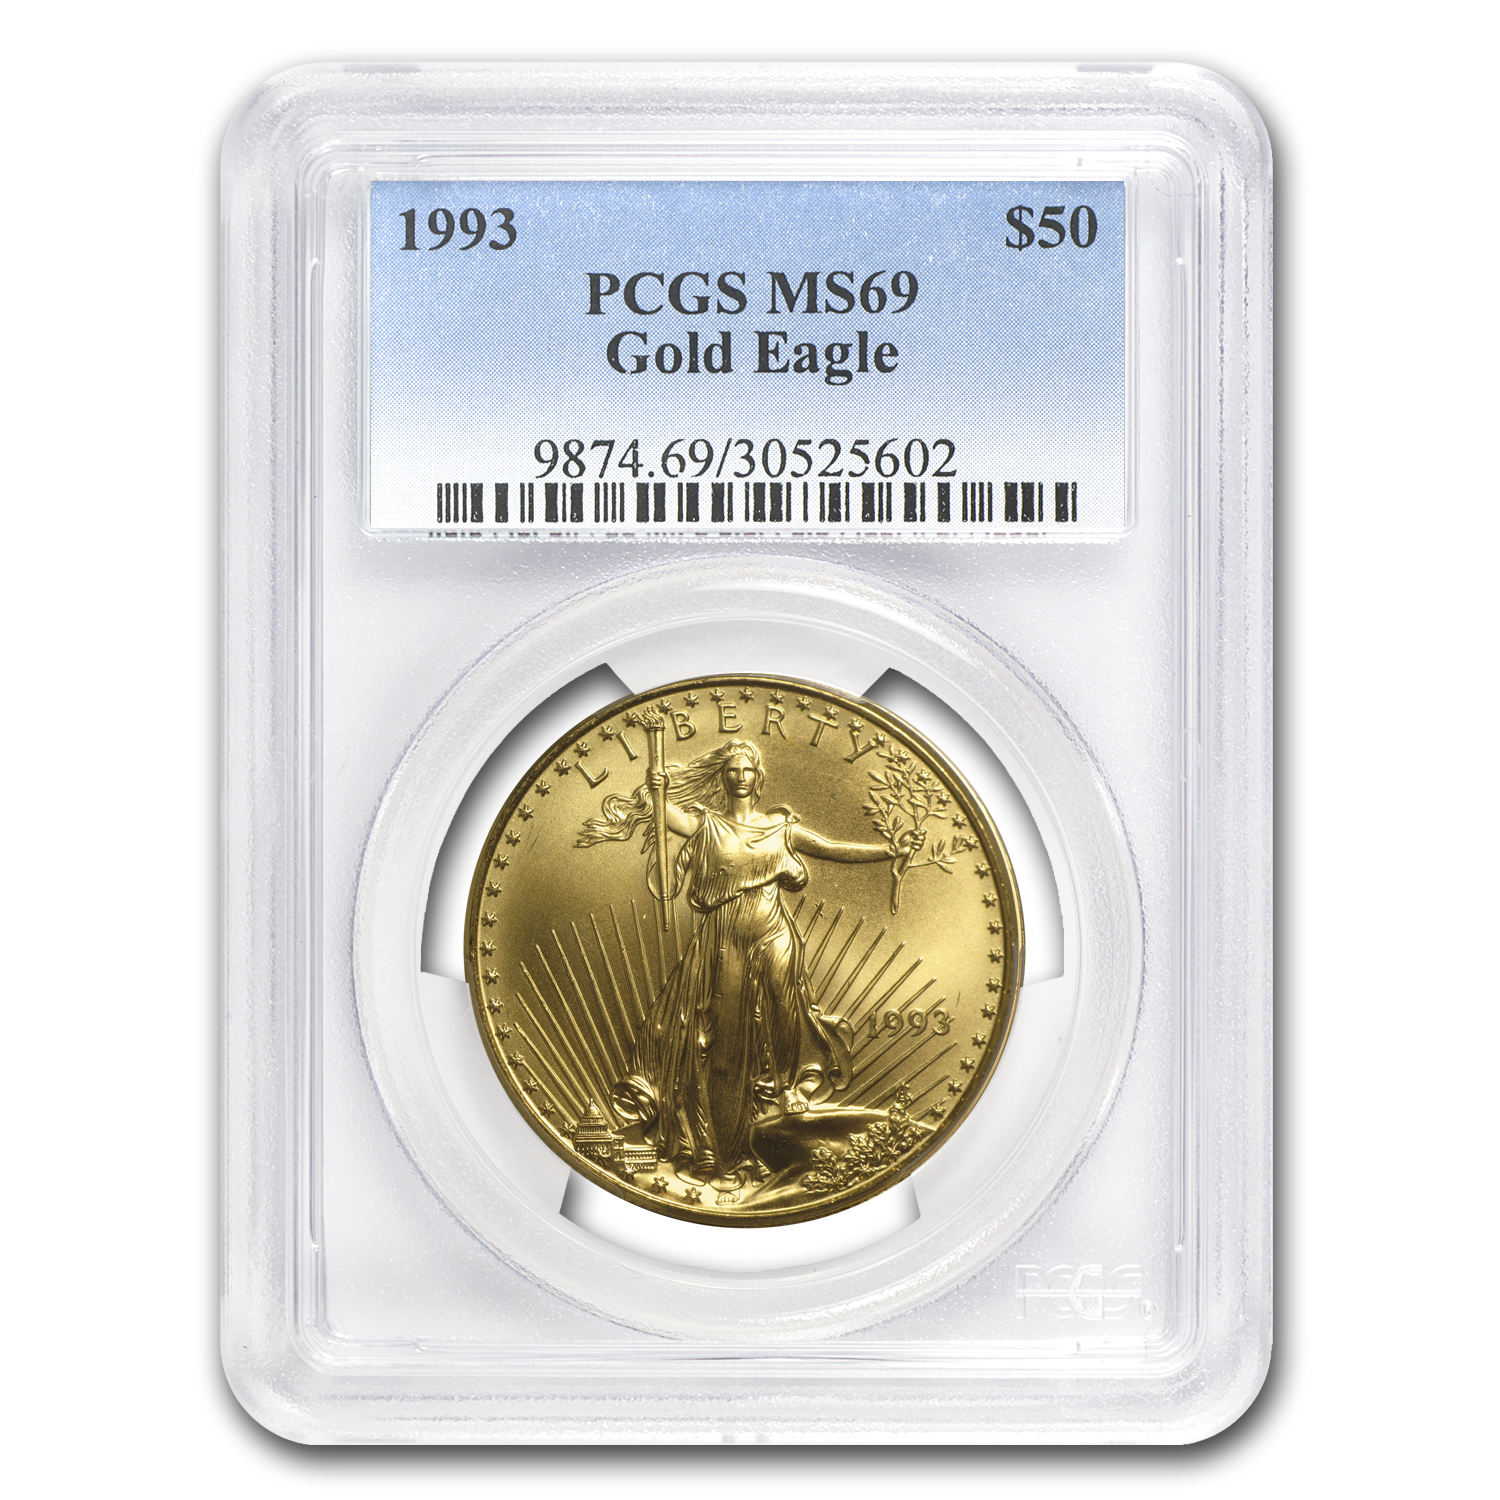 1993 1 oz Gold American Eagle MS-69 PCGS